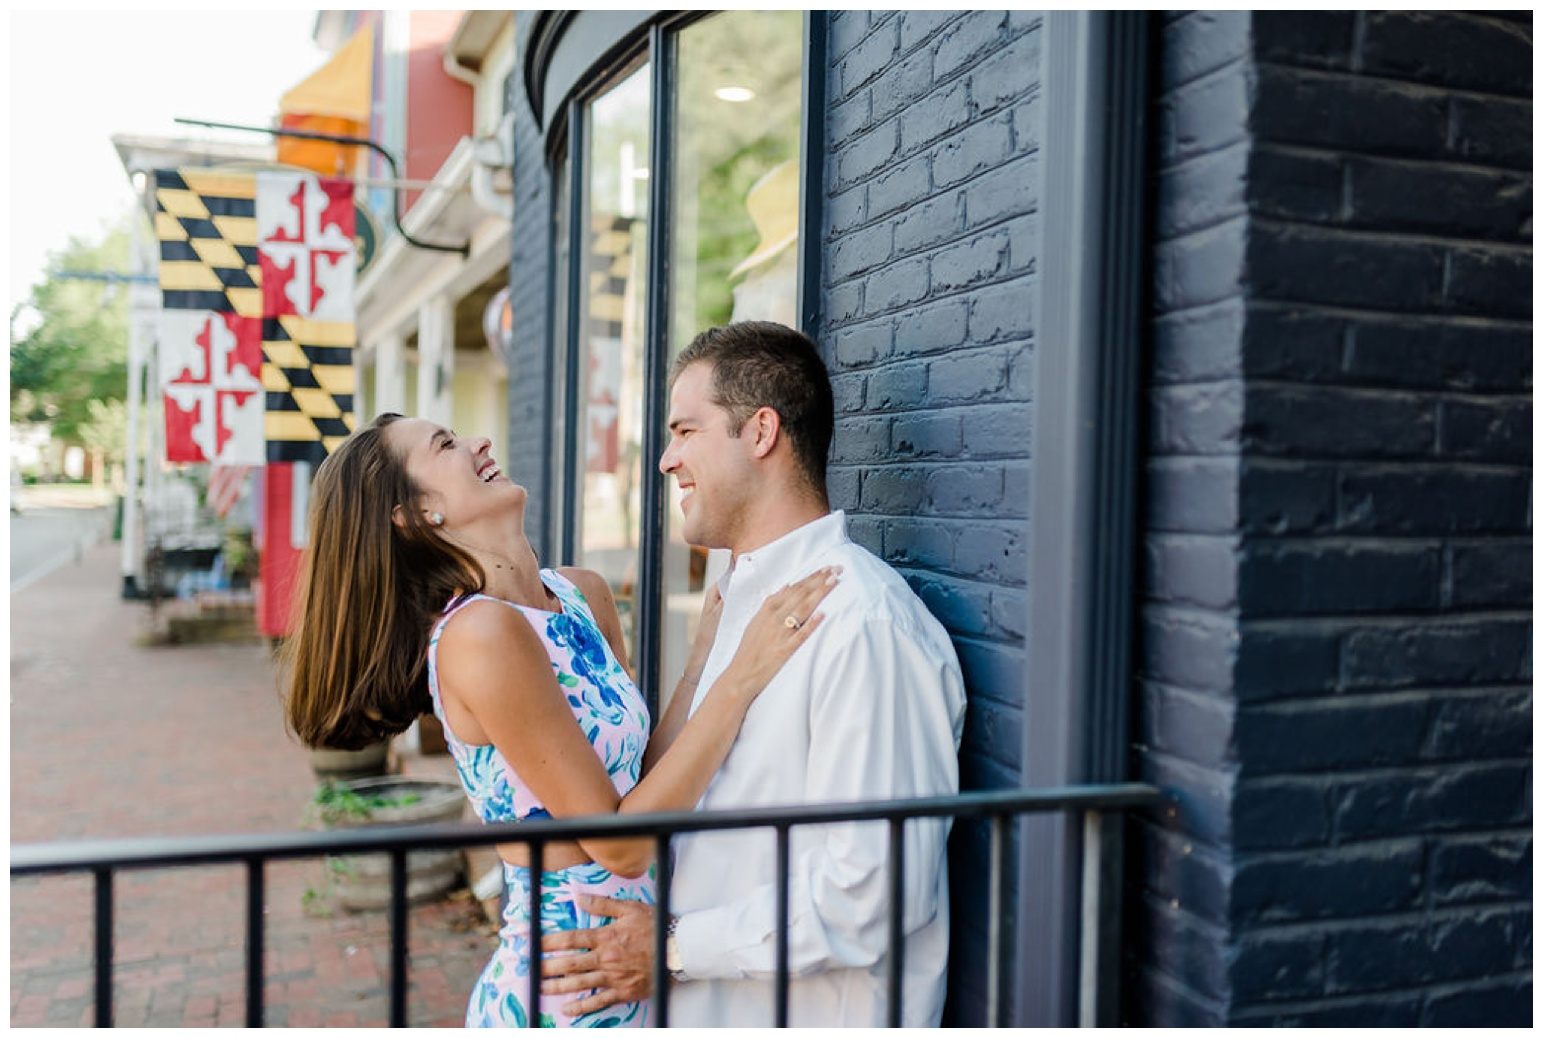 coastal maryland - engagement photos - shoot - inspiration and ideas - state flag - just engaged session at st. michaels - photo of couple laughing in front of building on talbot street